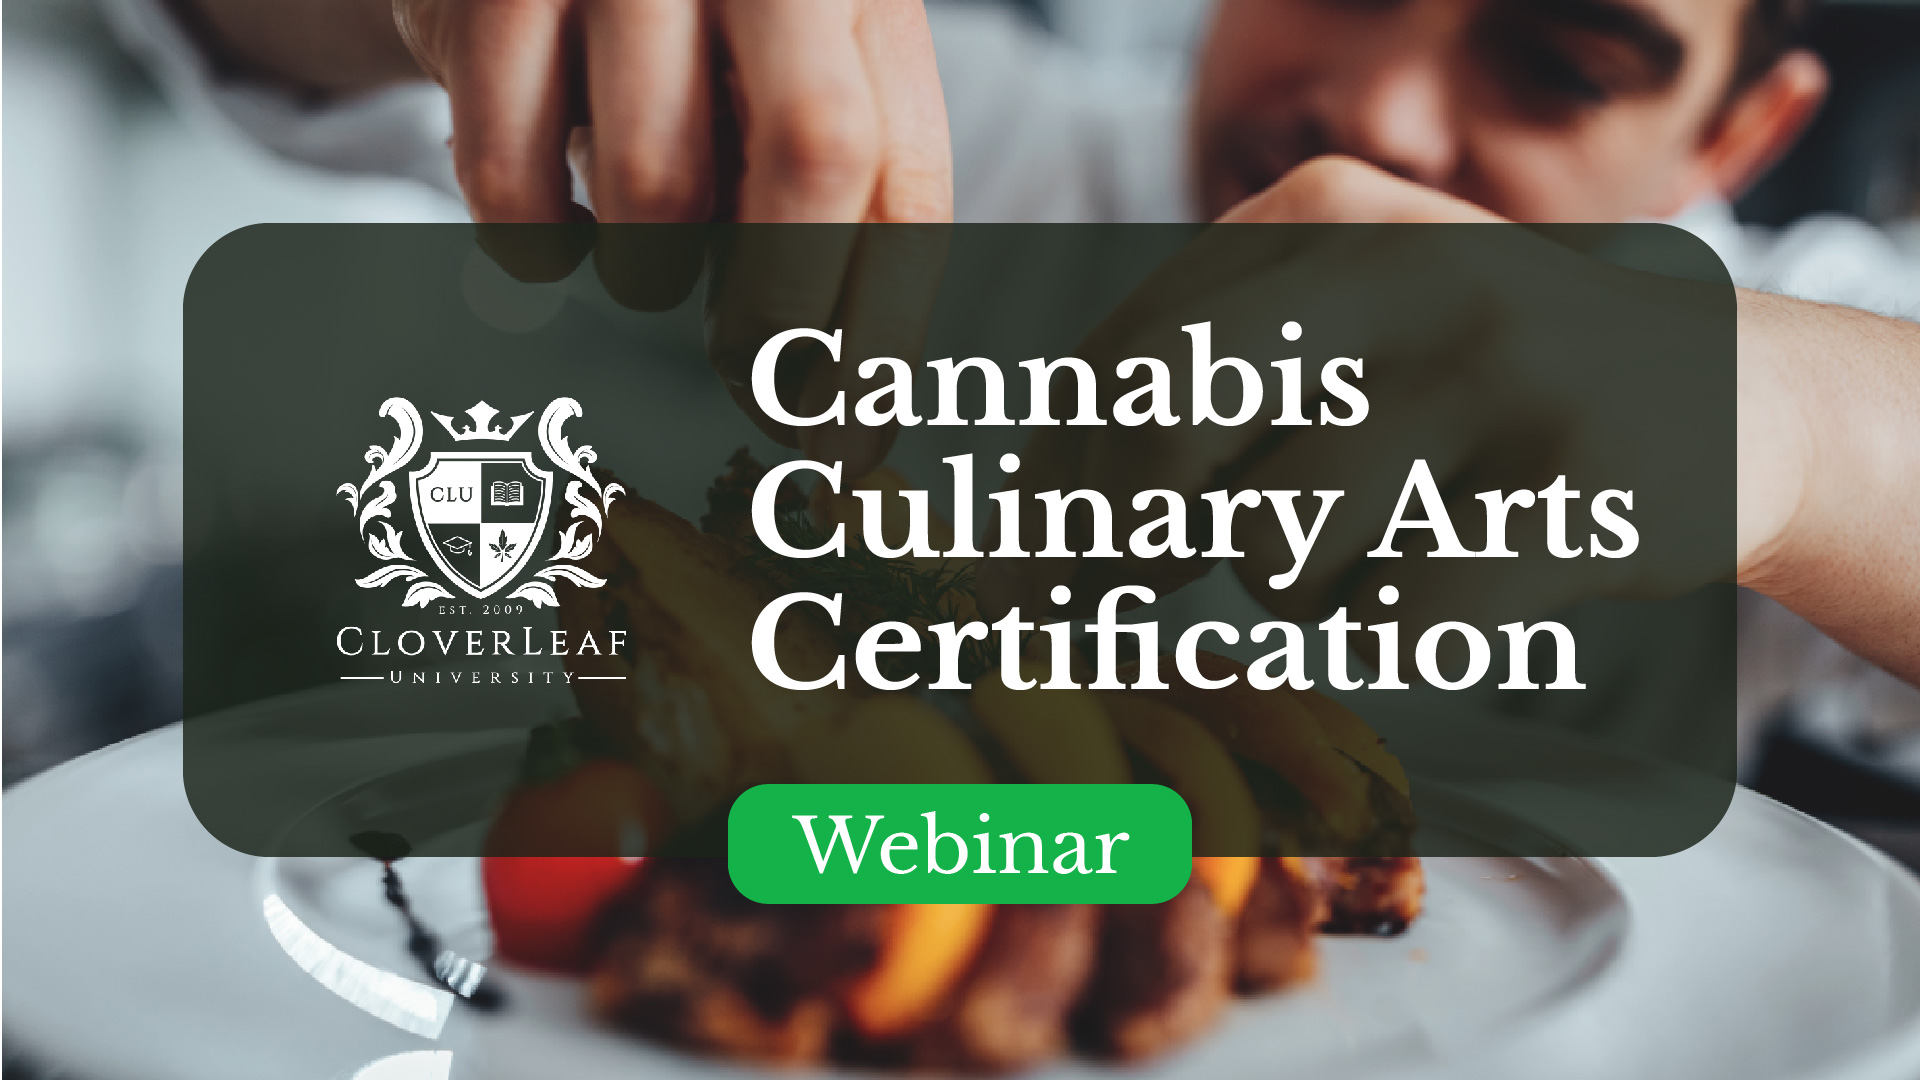 Cannabis Culinary Arts Certification